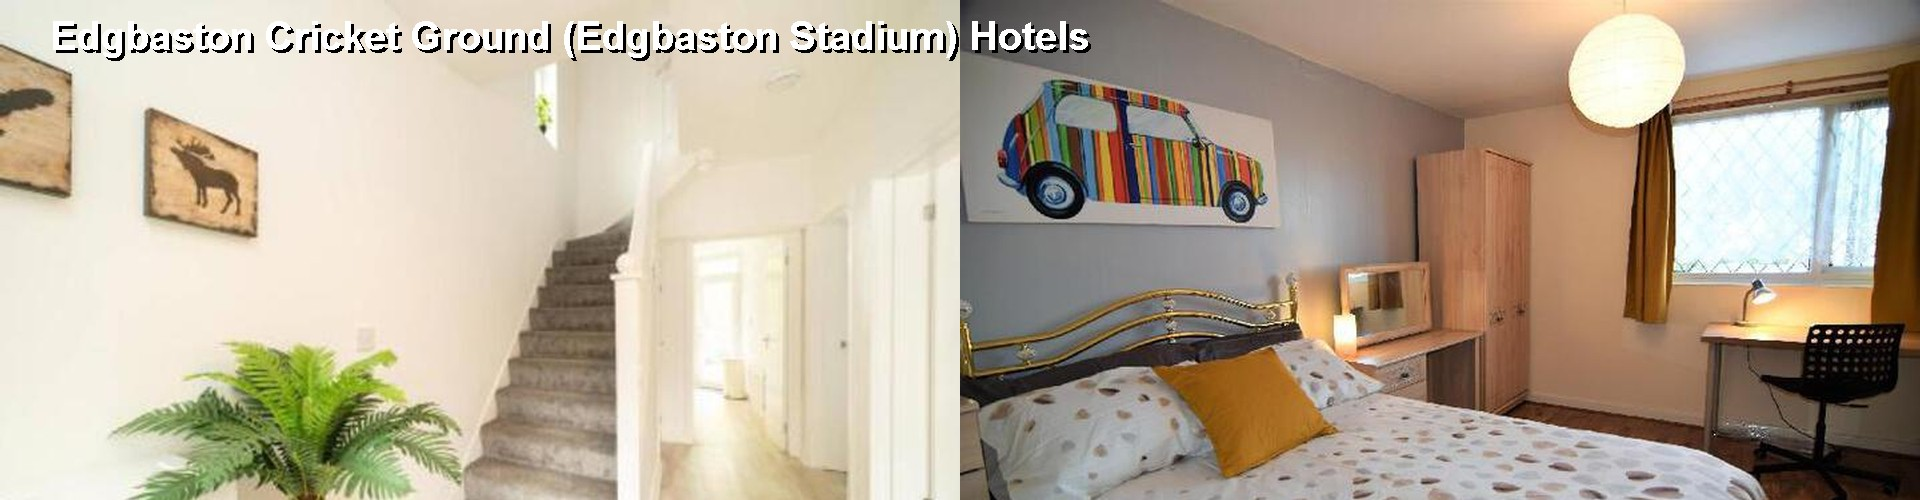 5 Best Hotels near Edgbaston Cricket Ground (Edgbaston Stadium)